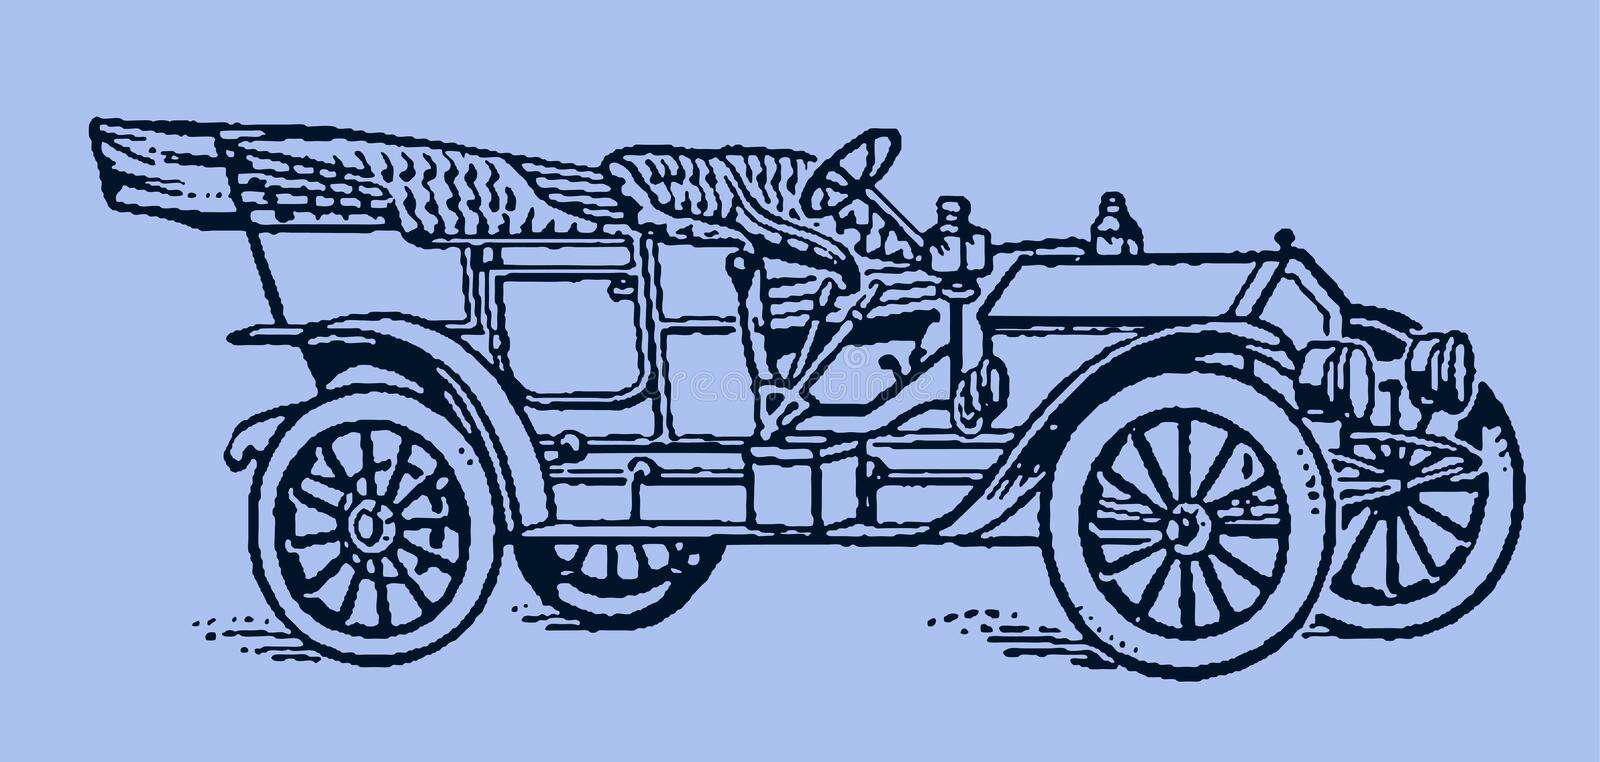 Classic touring car in quarter front view. Illustration after a lithography or engraving from the early 19th century. Editable in layers royalty free illustration